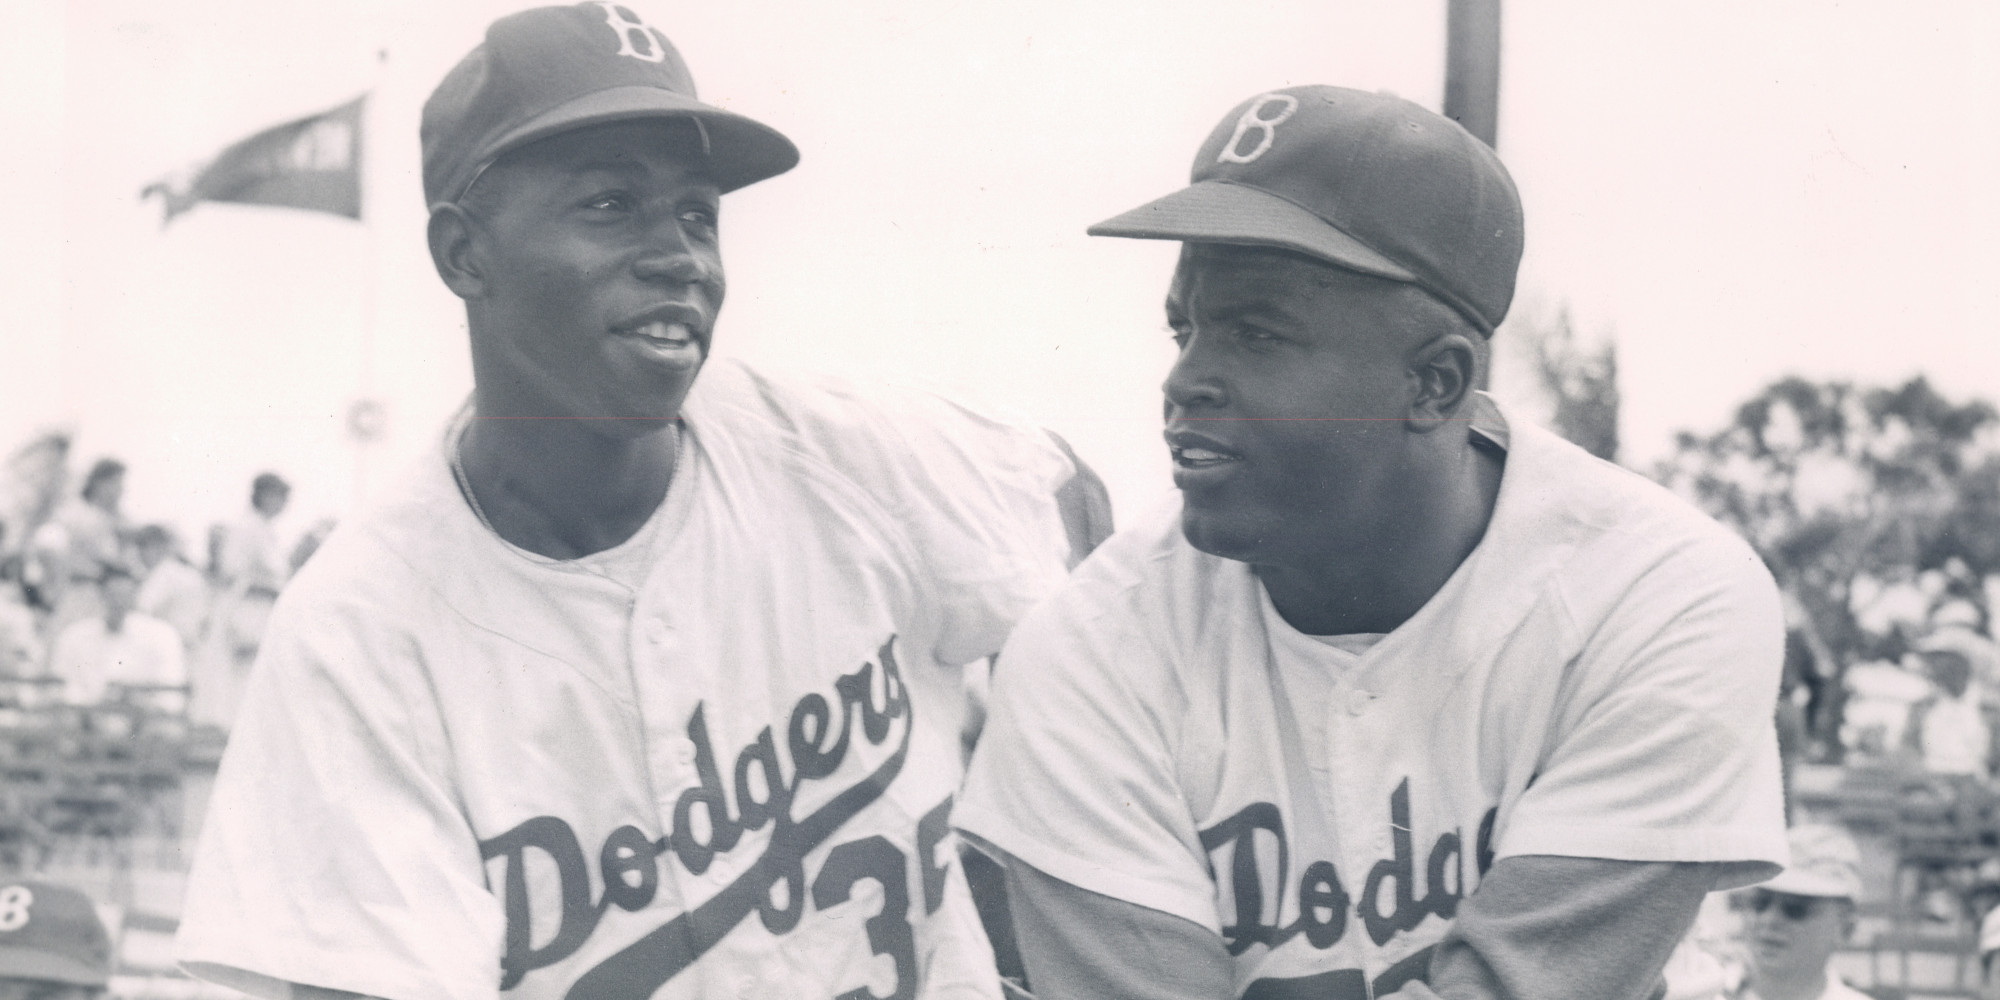 jackie robinson braking the color barrier in Pioneer & civil rights activist, jackie robinson broke the color barrier, becoming the first african american in professional baseball jackie robinson breaks major league baseball's color barrier when he plays first base for the brooklyn dodgers he is later named rookie of the year and featured.